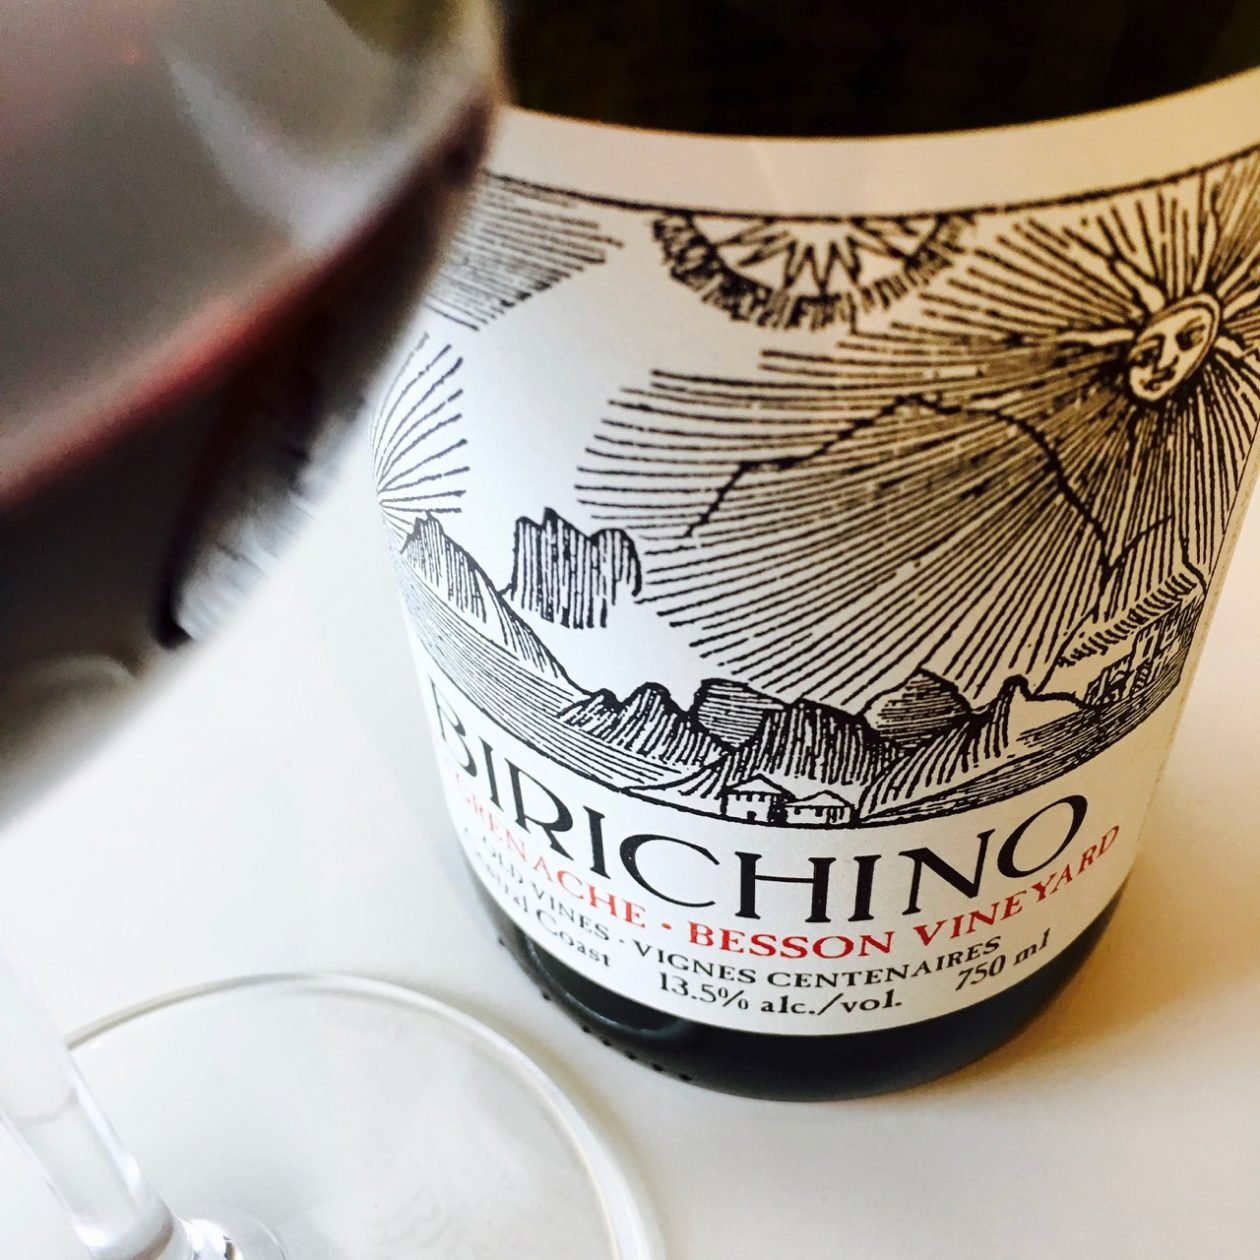 2013 Birichino Old Vines Grenache Besson Vineyard Central Coast